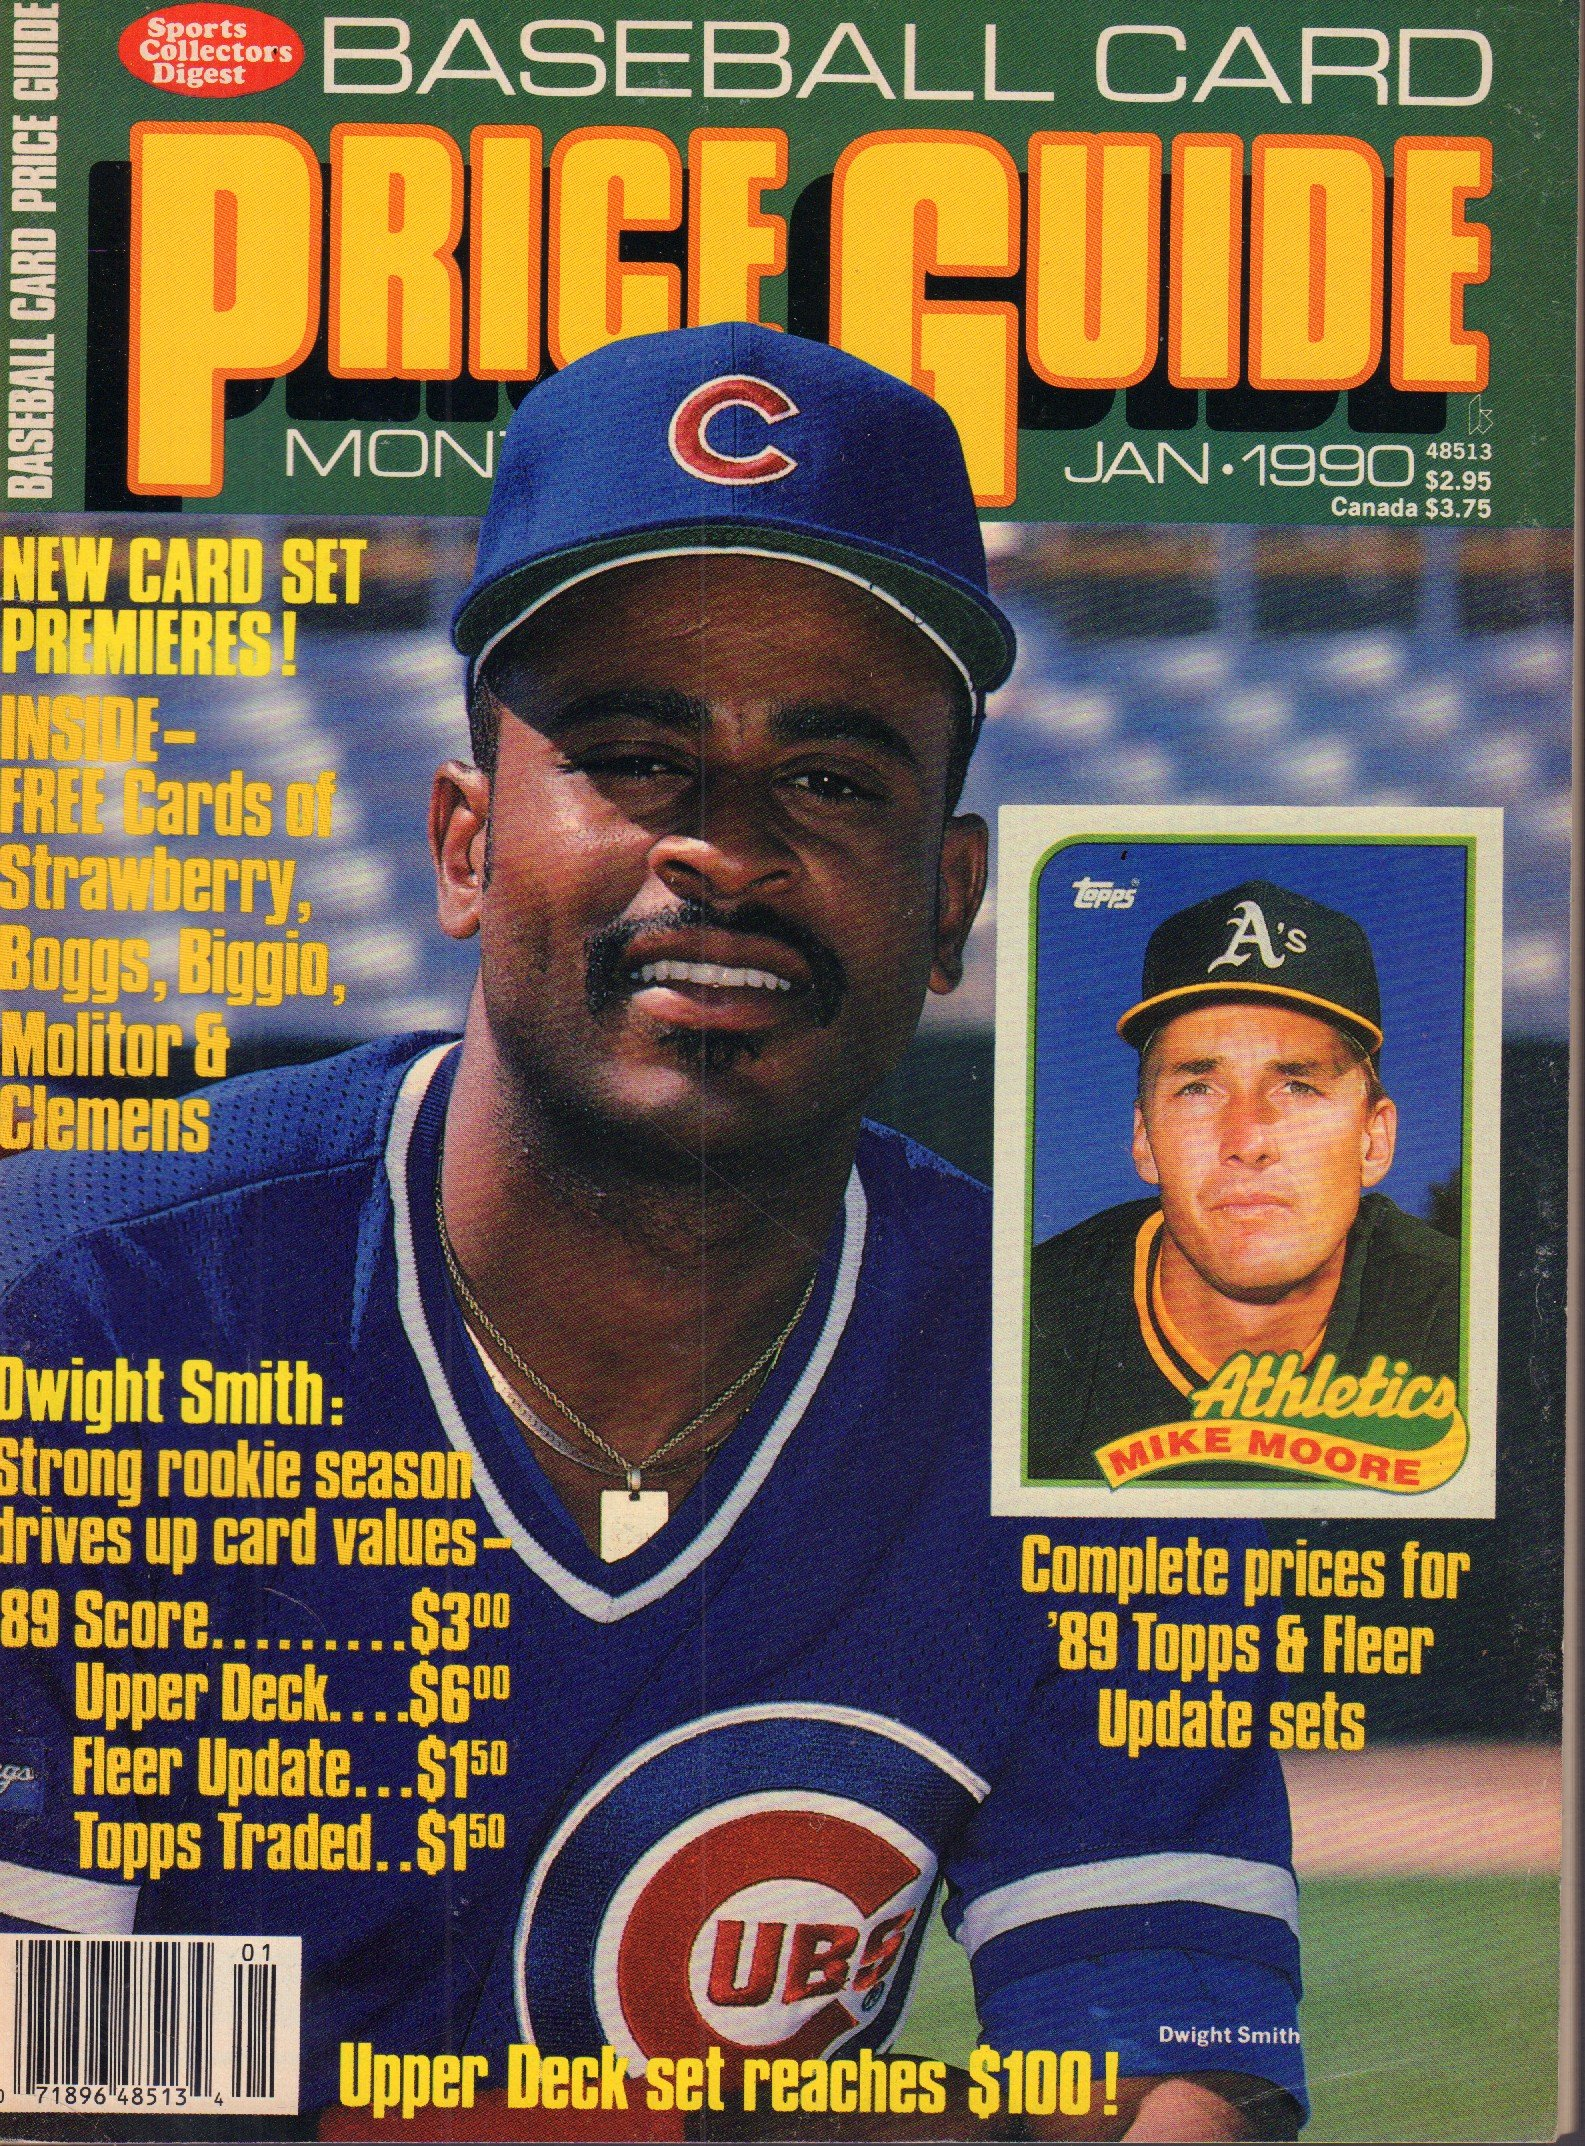 Baseball Card Price Guide January 1990 Mike Moore Dwight